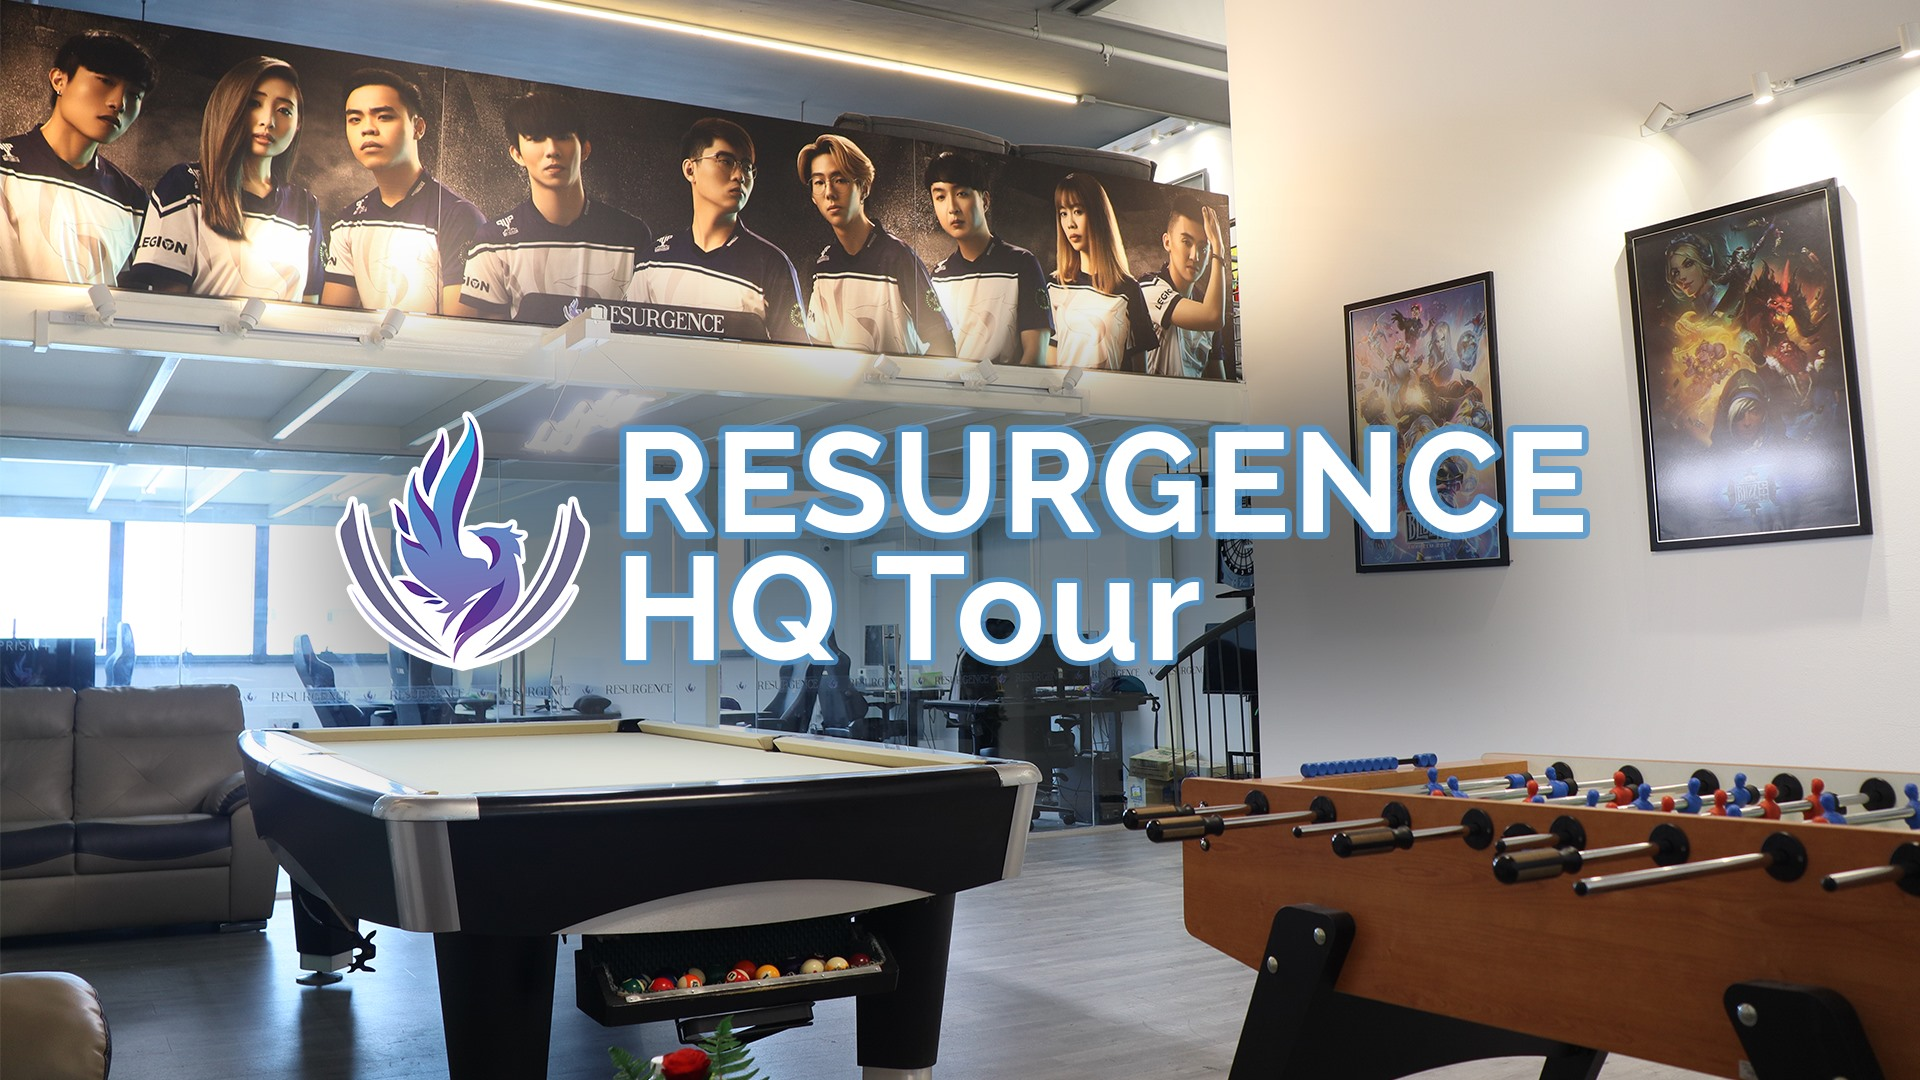 Resurgence HQ Tour